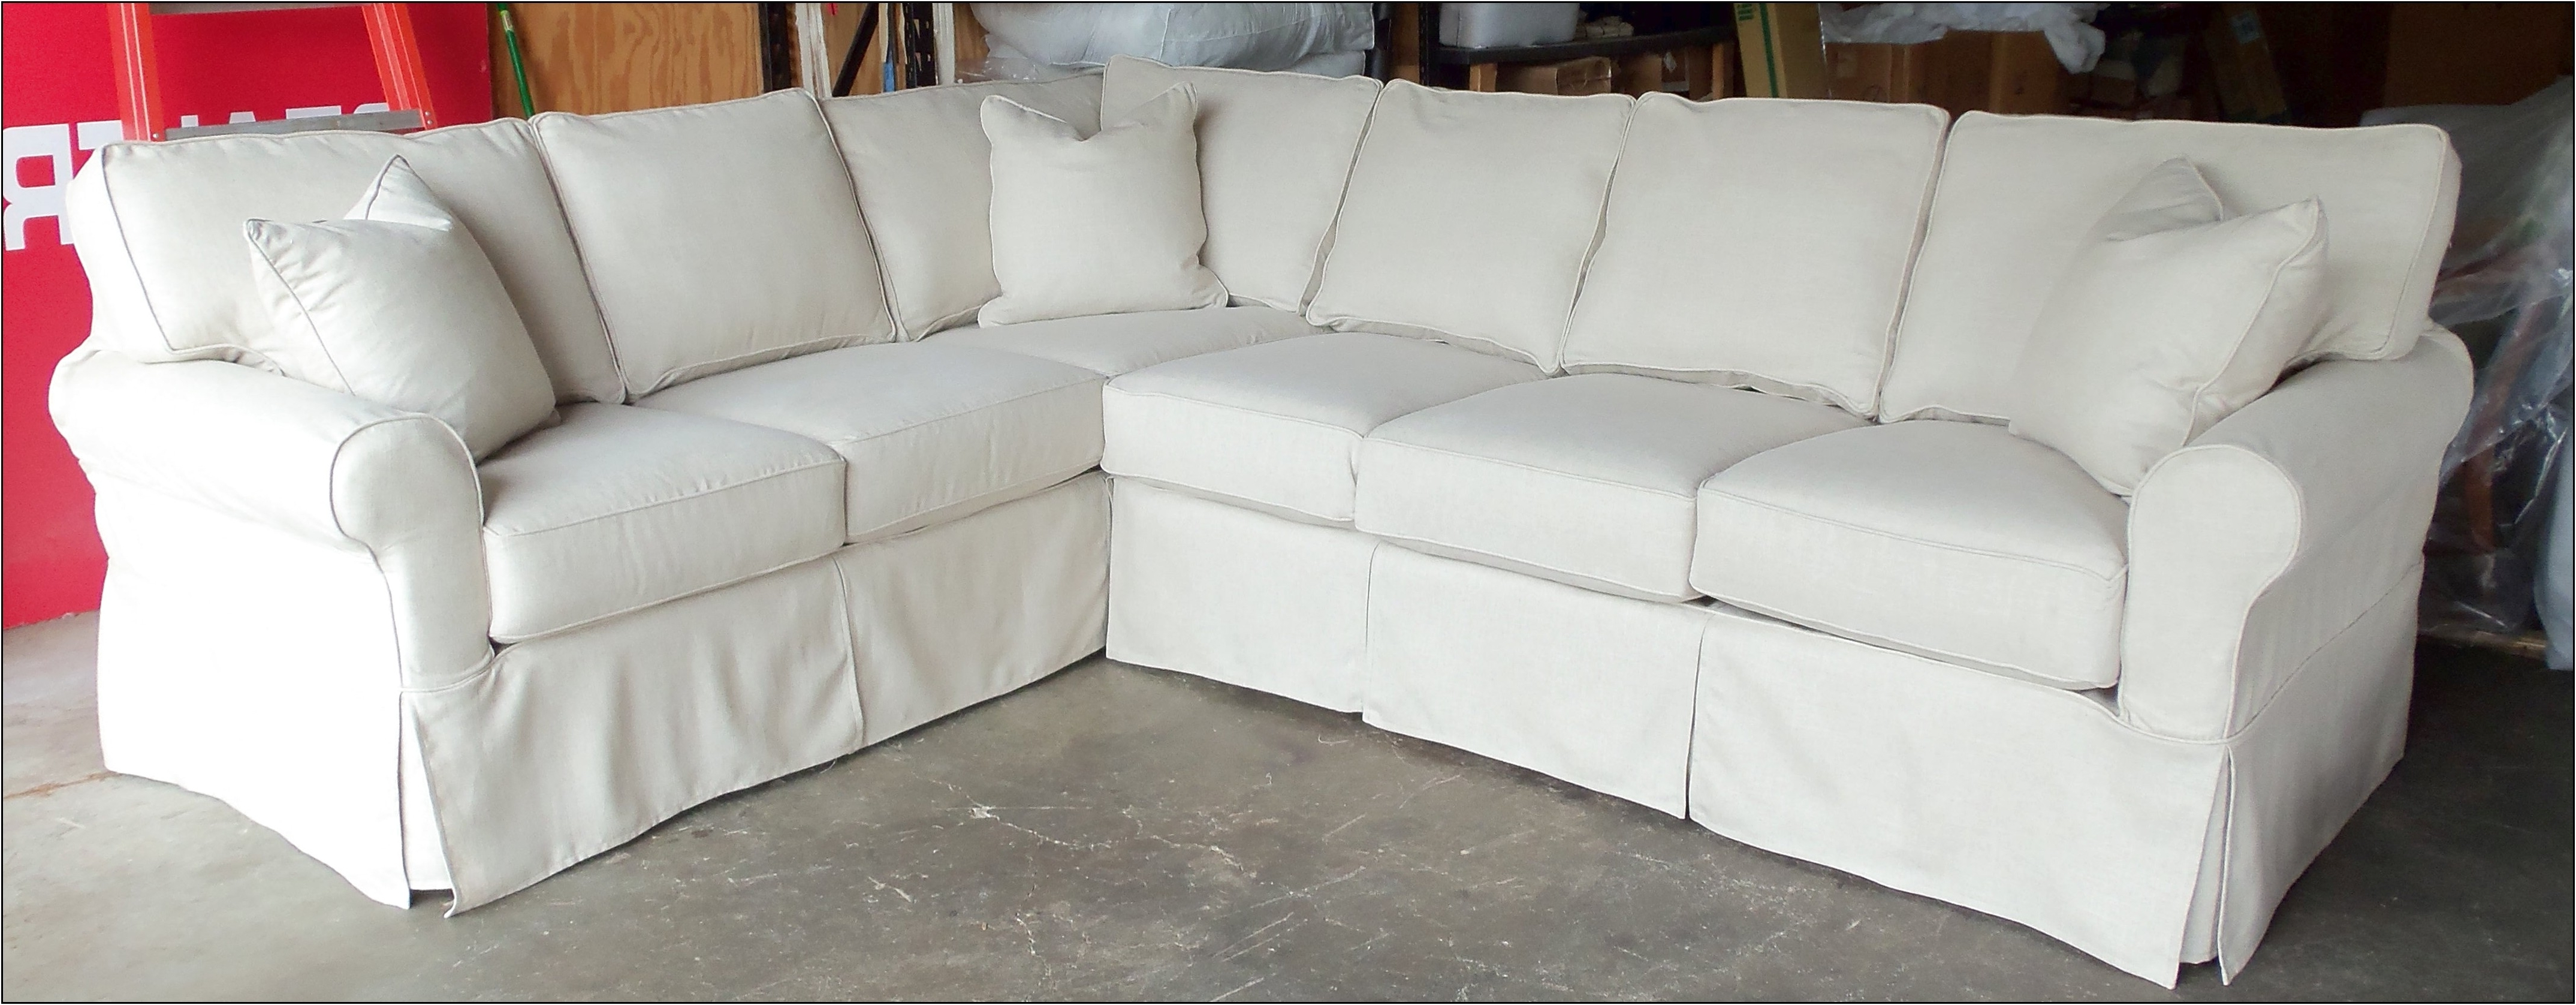 Best Of Queen Sleeper Sectional Sofa Beautiful – Tatsuyoru Intended For Fashionable Panama City Fl Sectional Sofas (View 3 of 15)